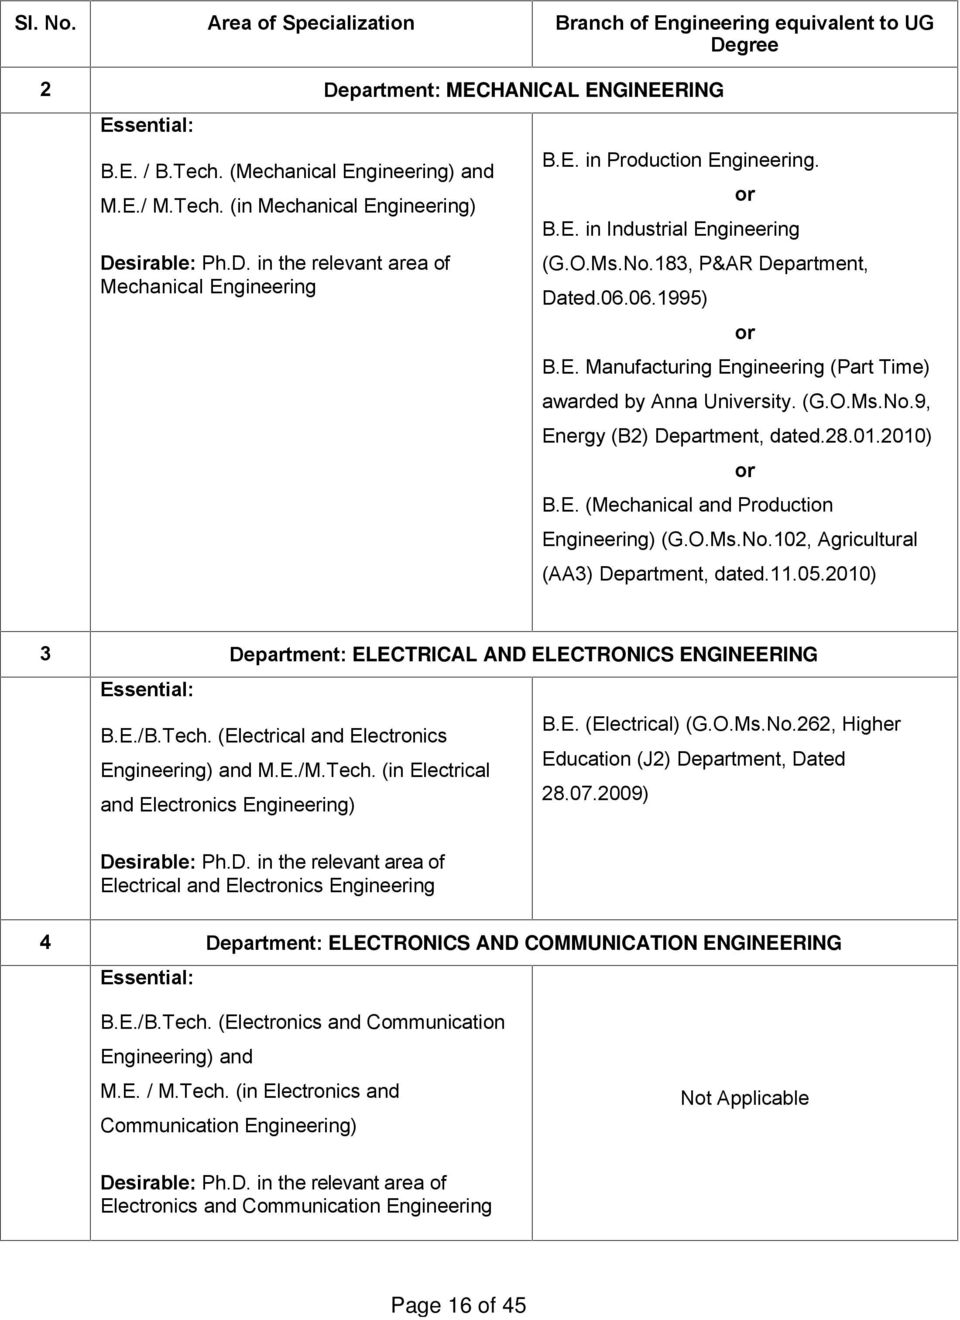 (G.O.Ms.No.9, Energy (B2) Department, dated.28.01.2010) or B.E. (Mechanical and Production Engineering) (G.O.Ms.No.102, Agricultural (AA3) Department, dated.11.05.